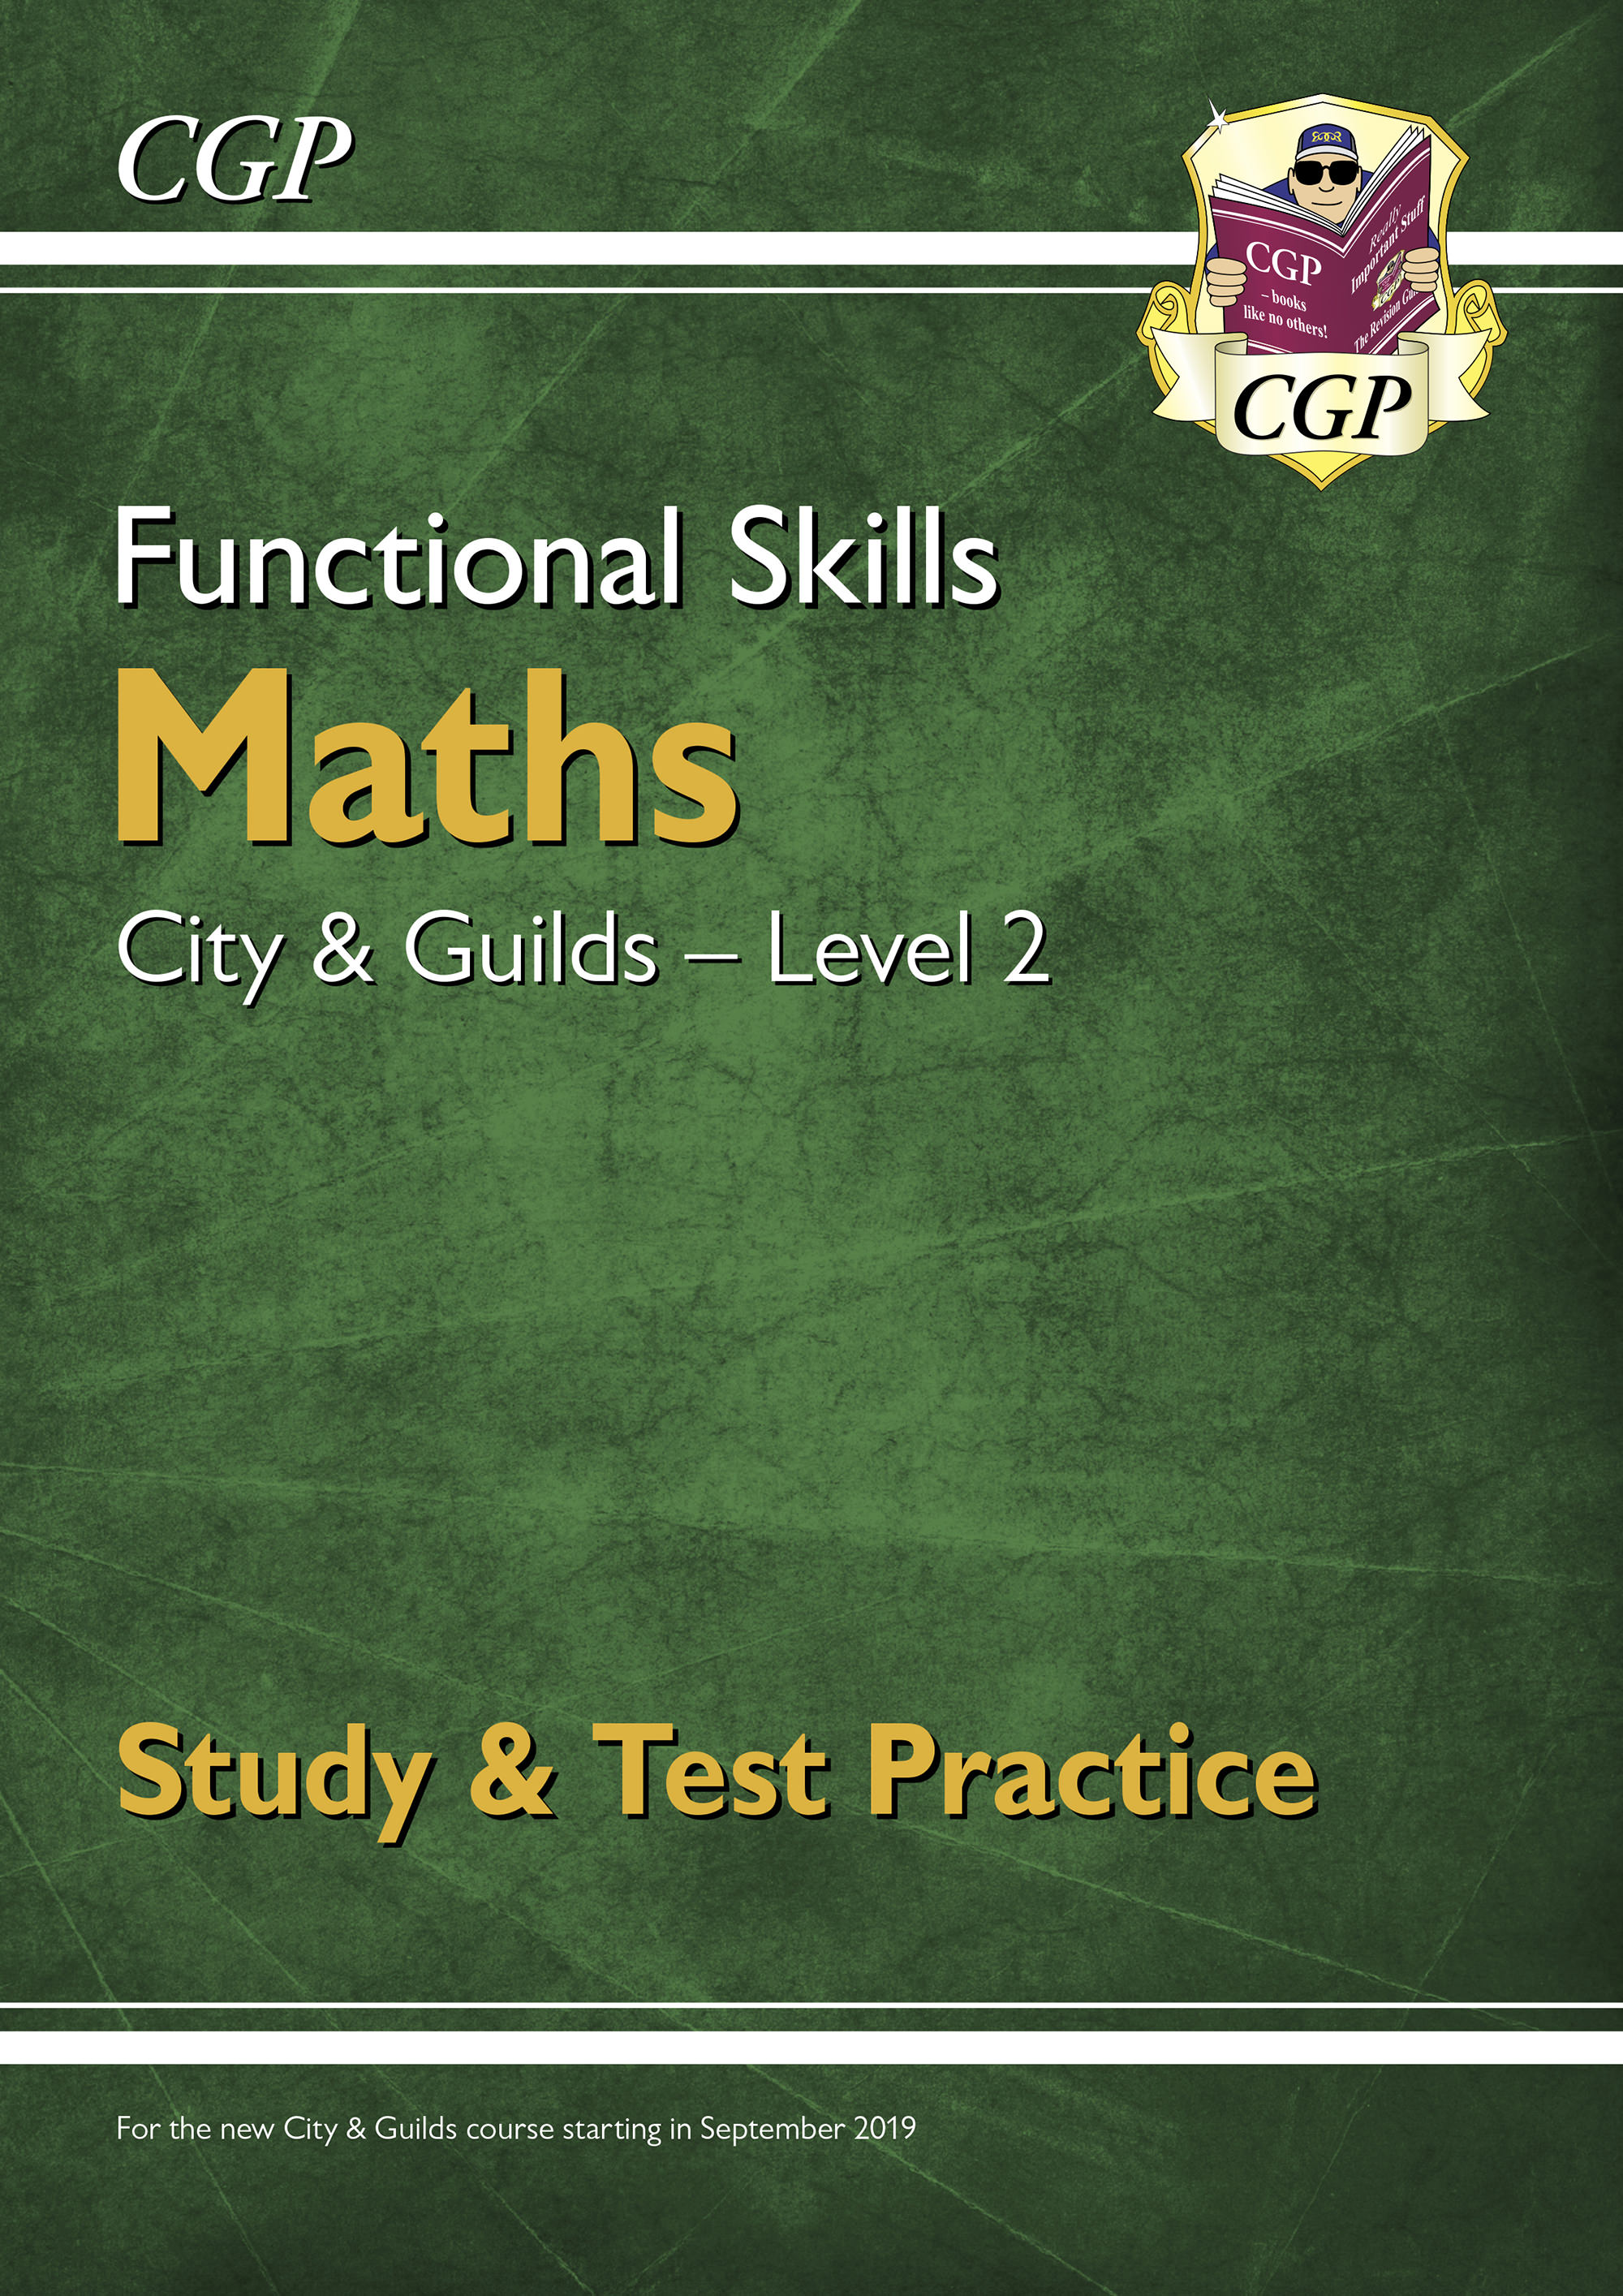 M2CGSRA1D - New Functional Skills Maths: City & Guilds Level 2 -Study & Test Practice (for 2020 & be